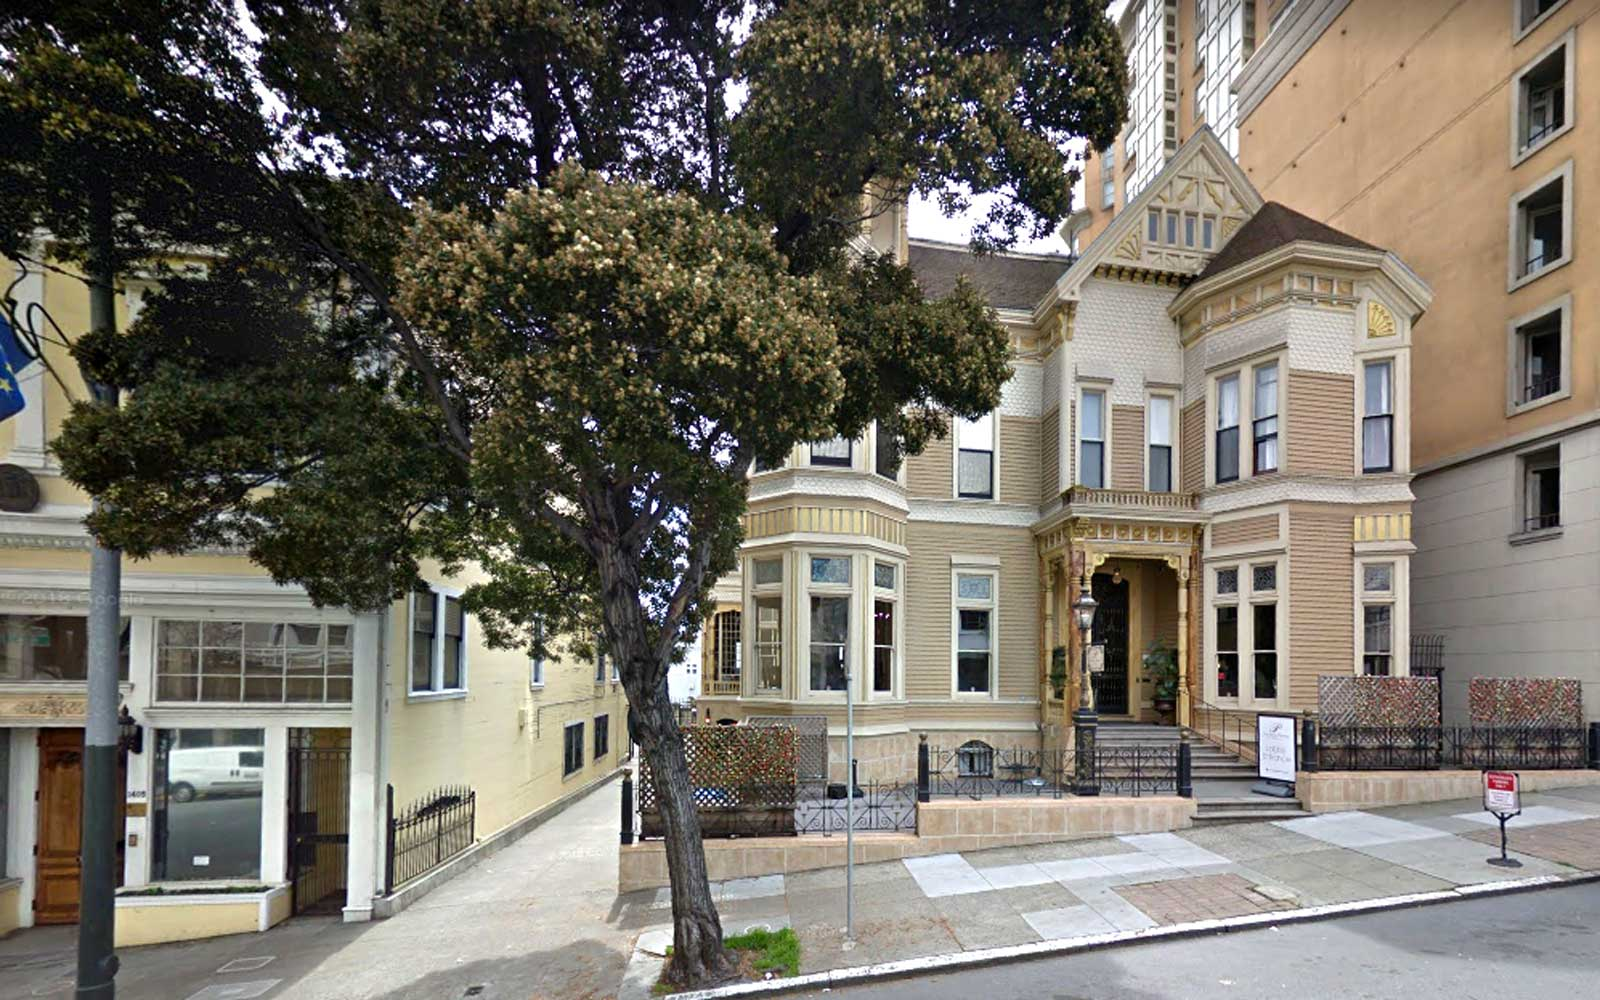 San Francisco's Most Expensive Airbnb Is Being Transformed Into a Gorgeous Hotel